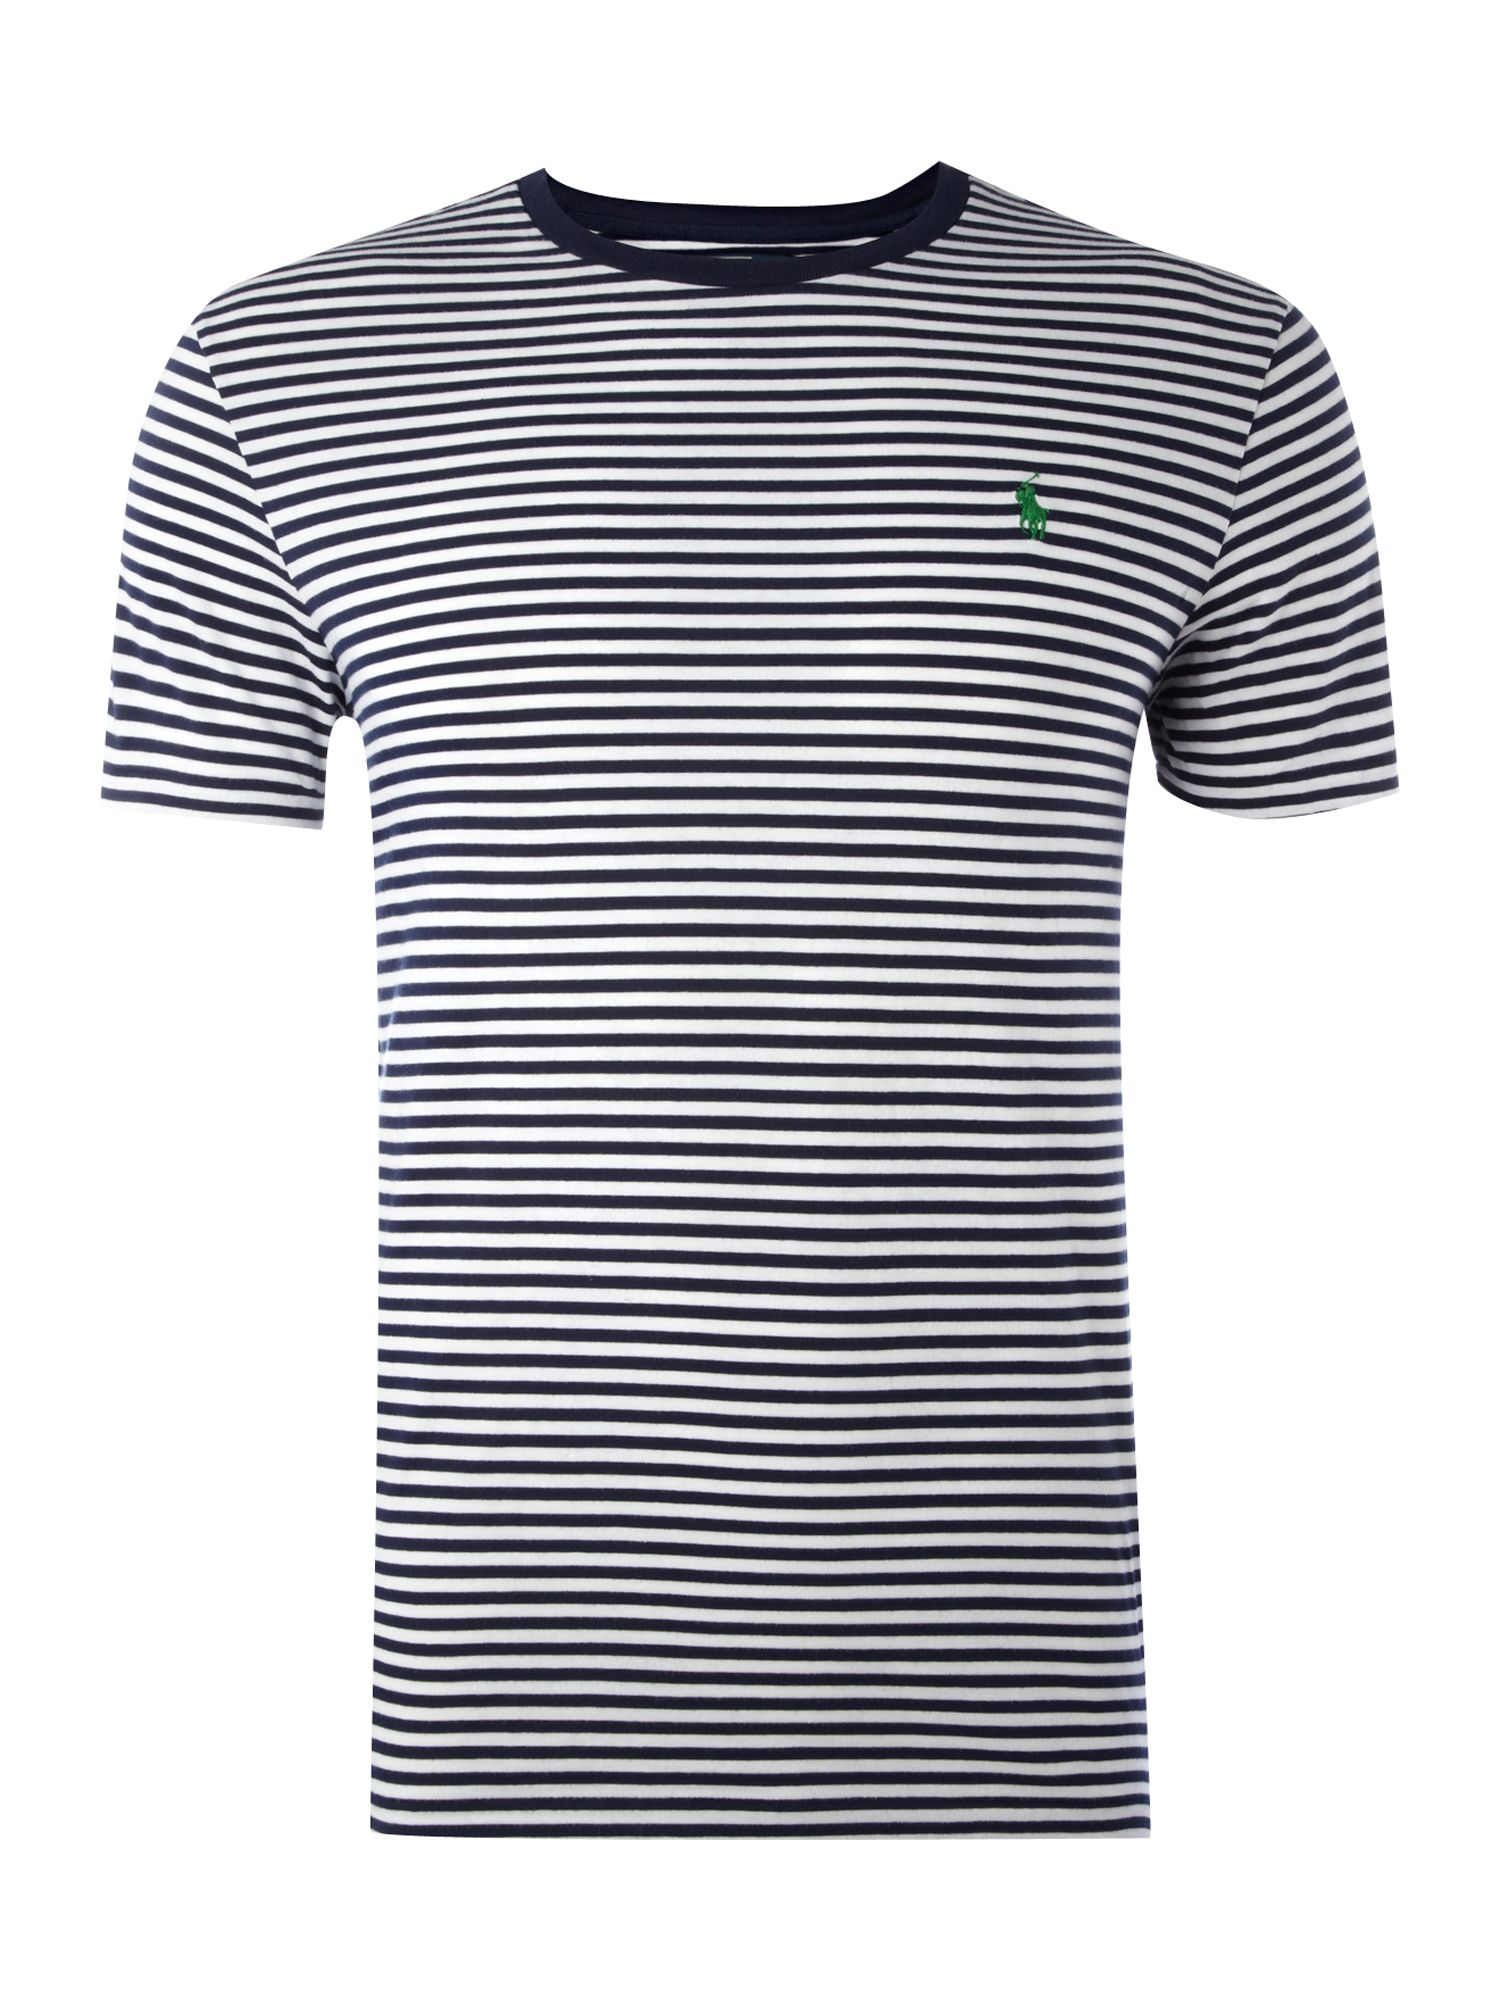 Polo Ralph Lauren Mens Polo Ralph Lauren Fine stripe T-shirt, product image